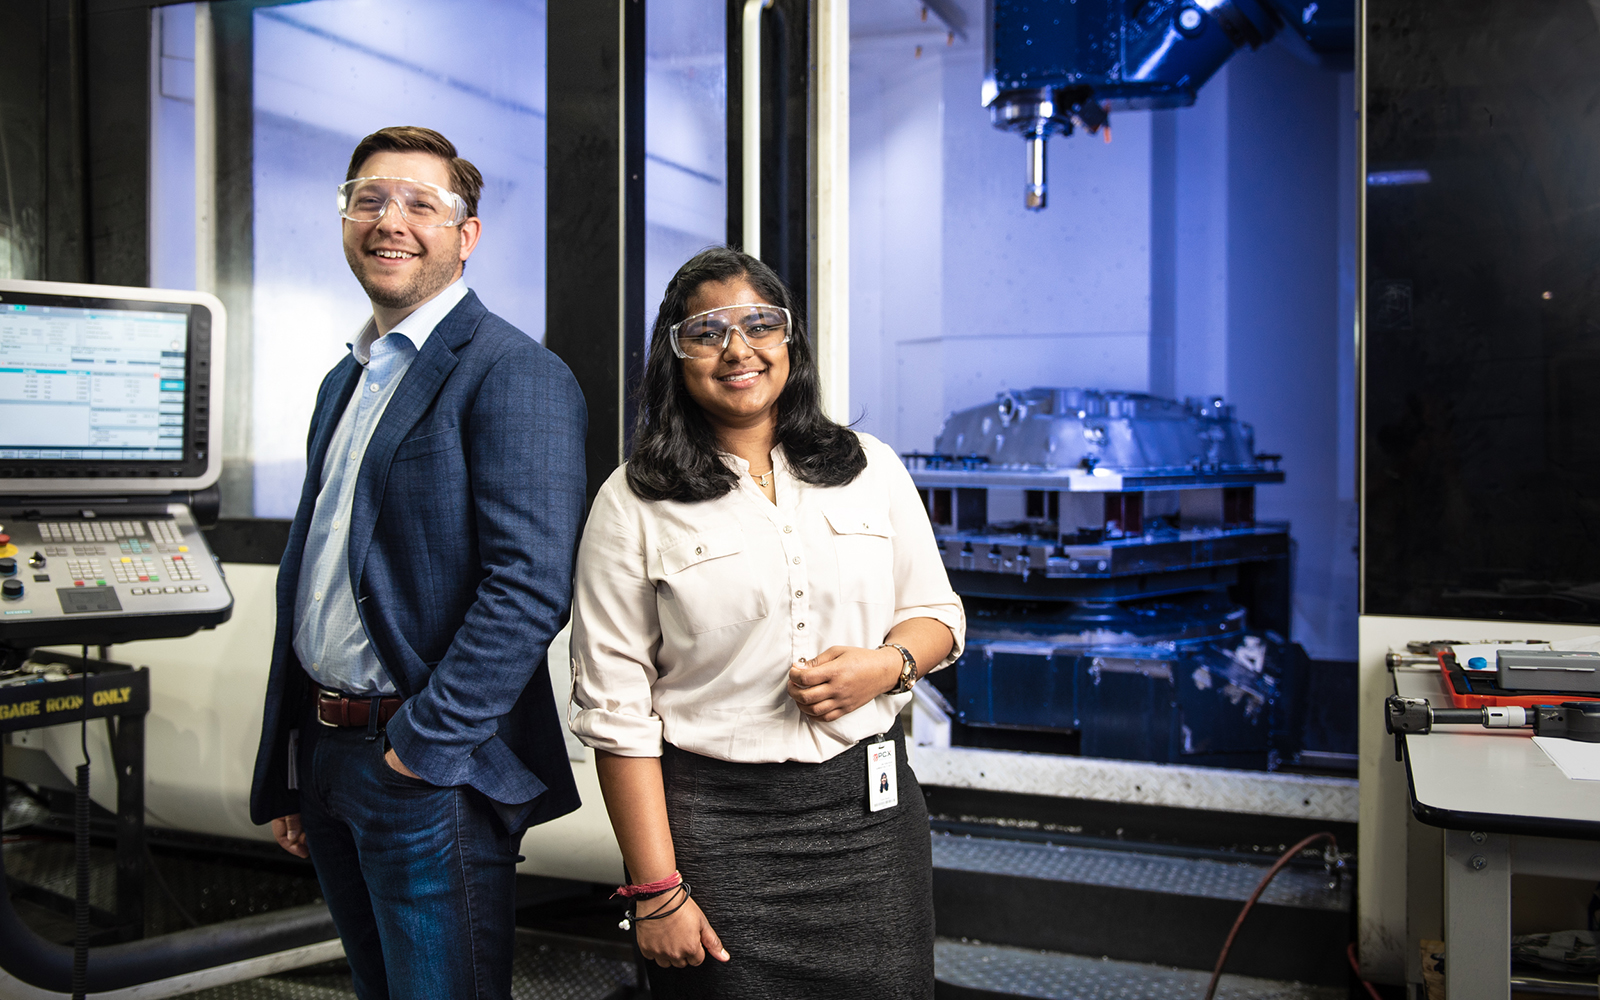 Donald Pendagast and Chitra Reddy pose near industrial equipment.